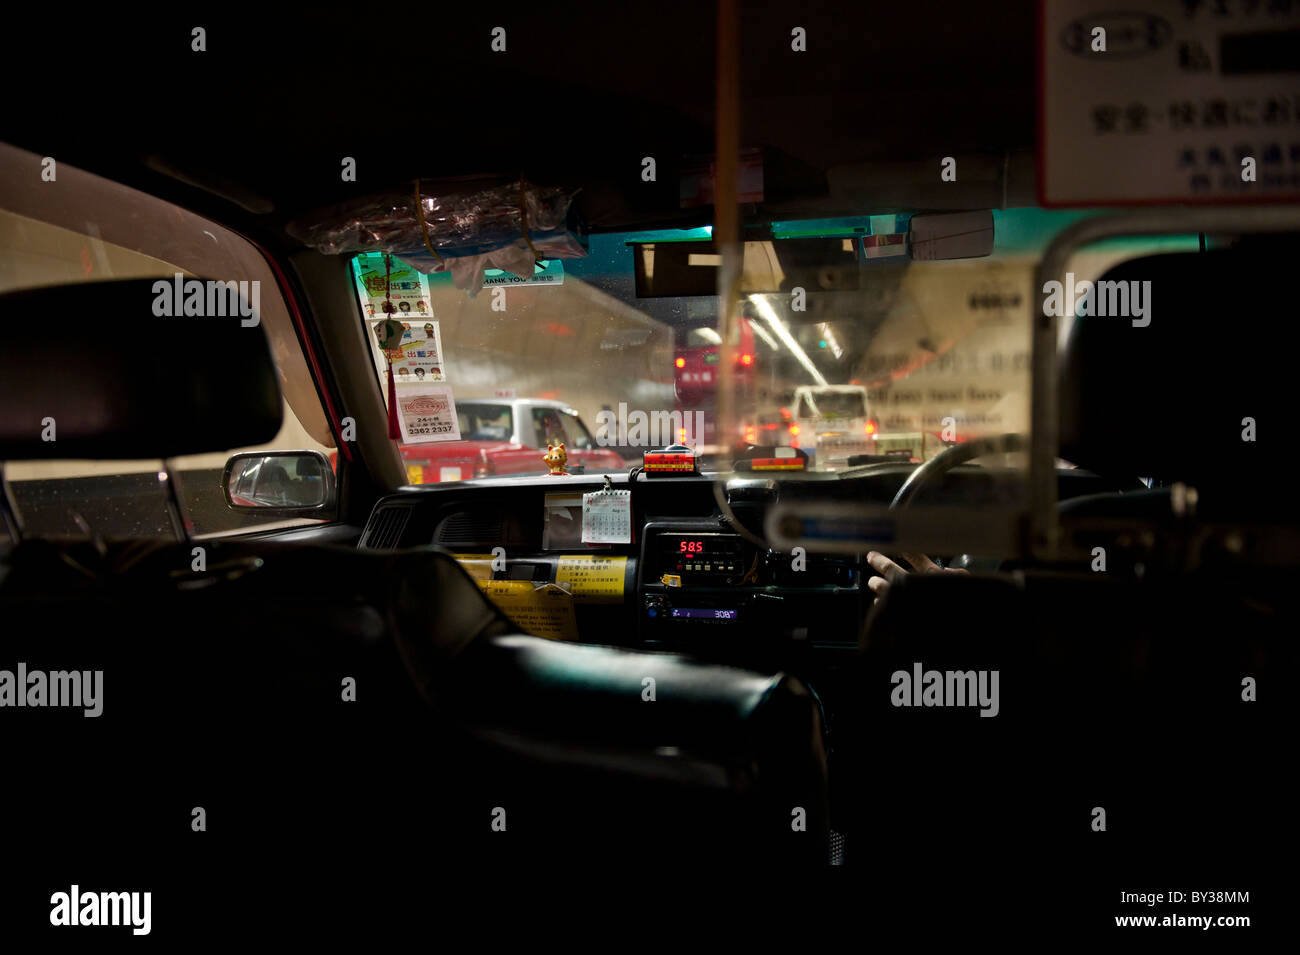 View Through a Taxicab Windscreen in the Cross Harbor Tunnel Passing from Hong Kong Island to Kowloon - Stock Image